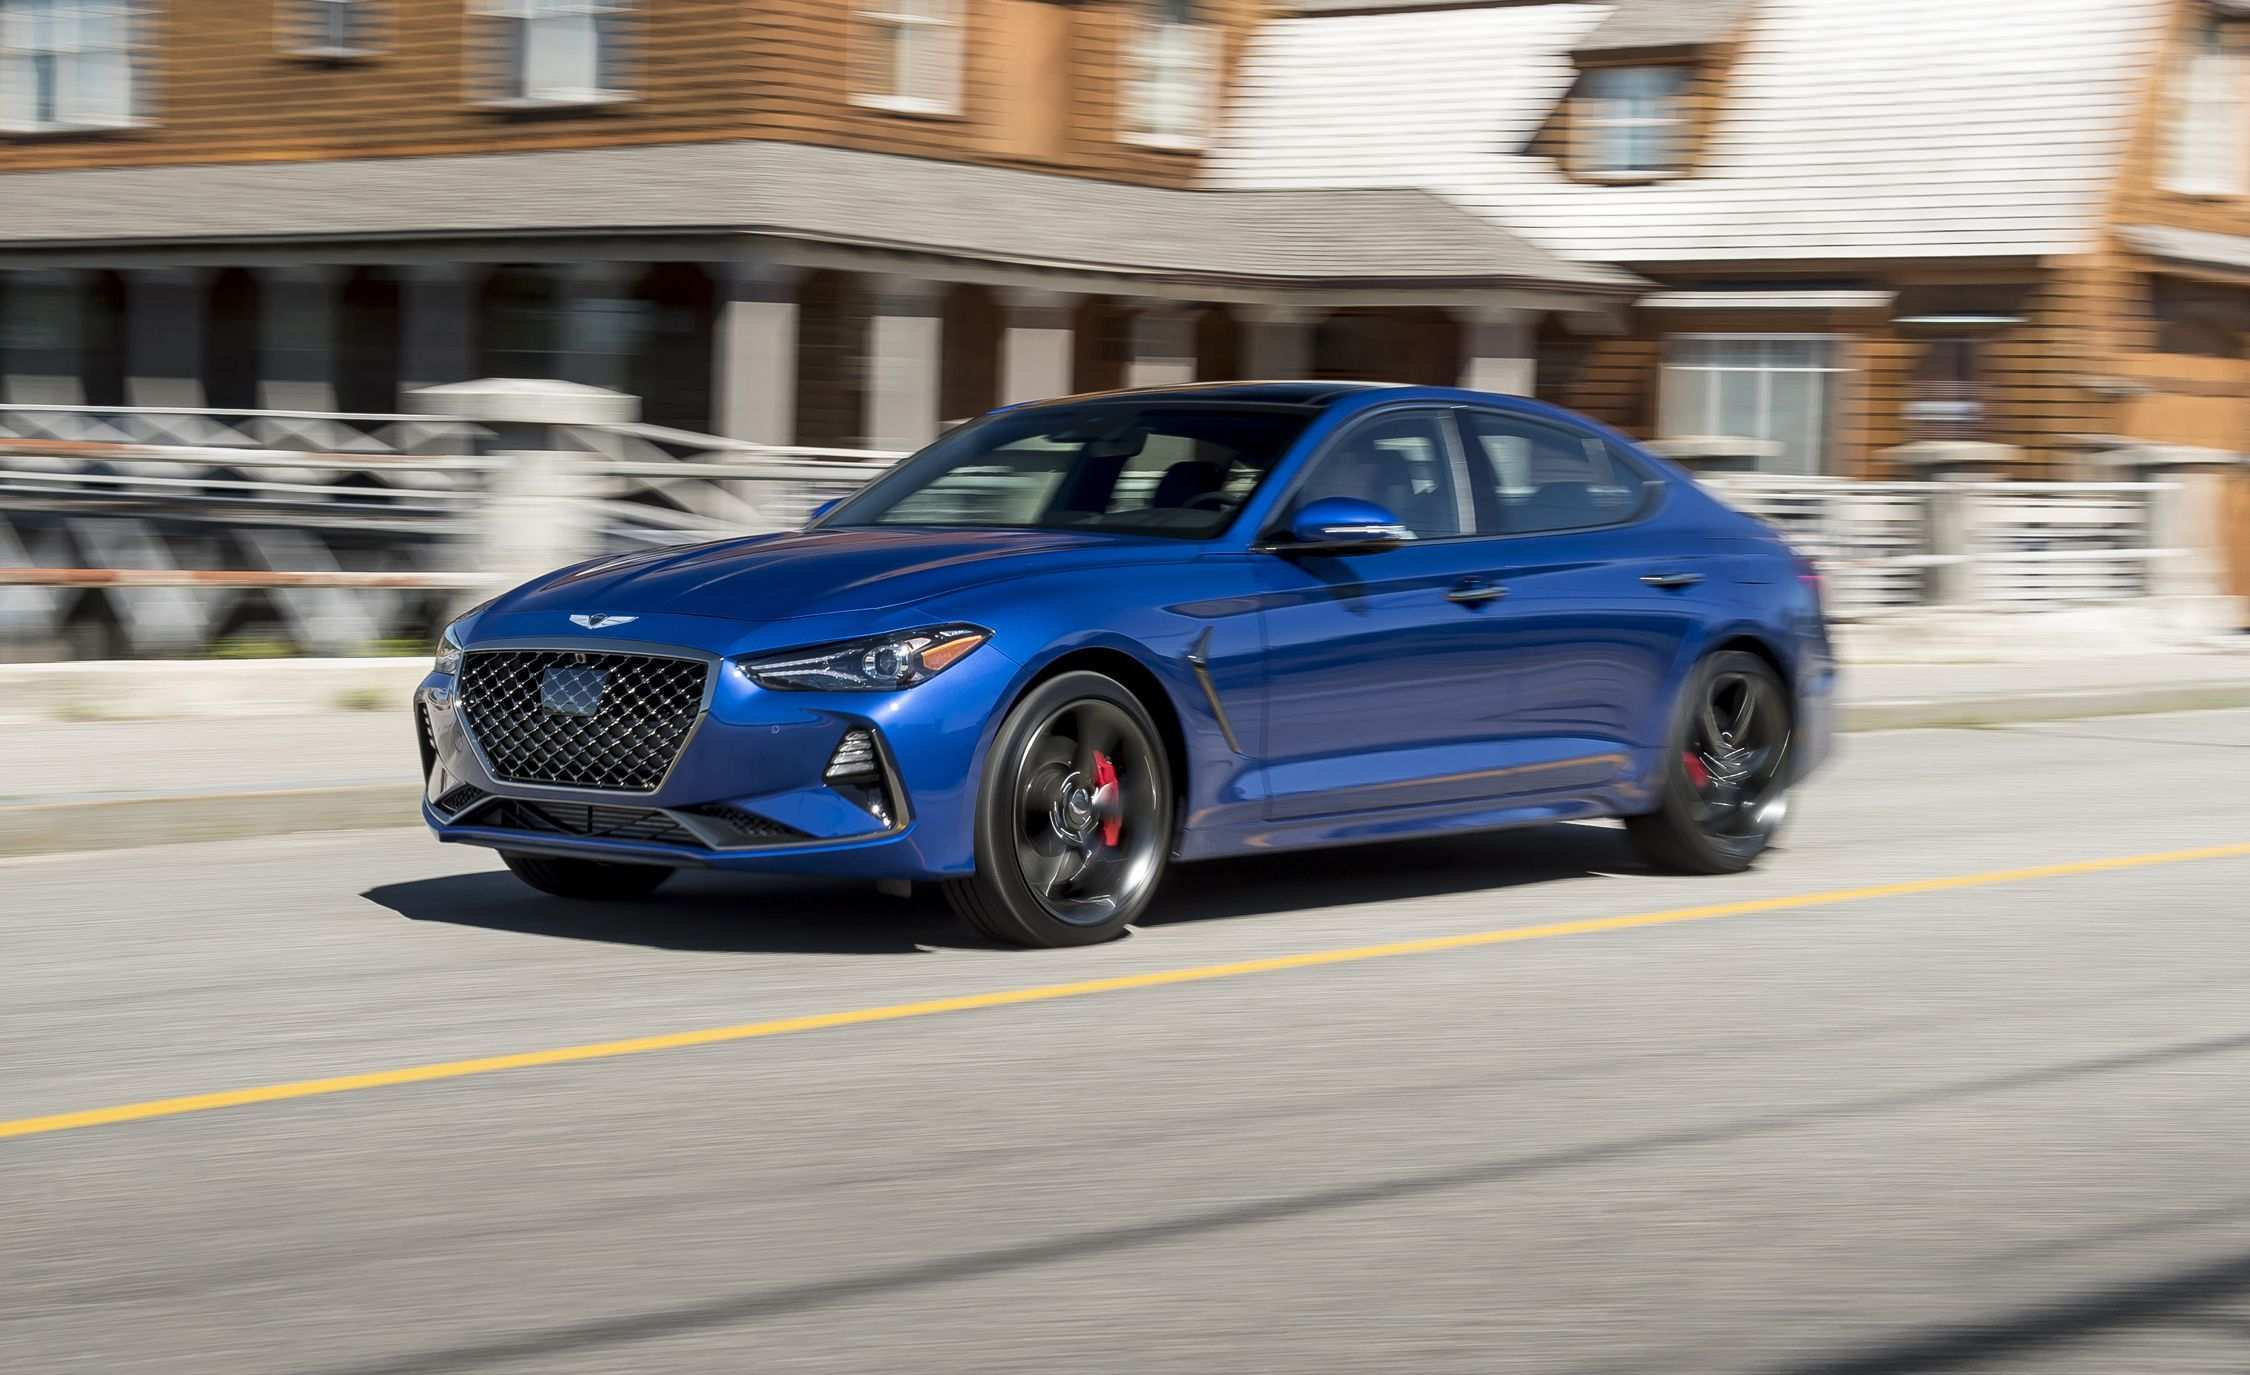 36 Best Review 2019 Genesis G70 Review Wallpaper for 2019 Genesis G70 Review